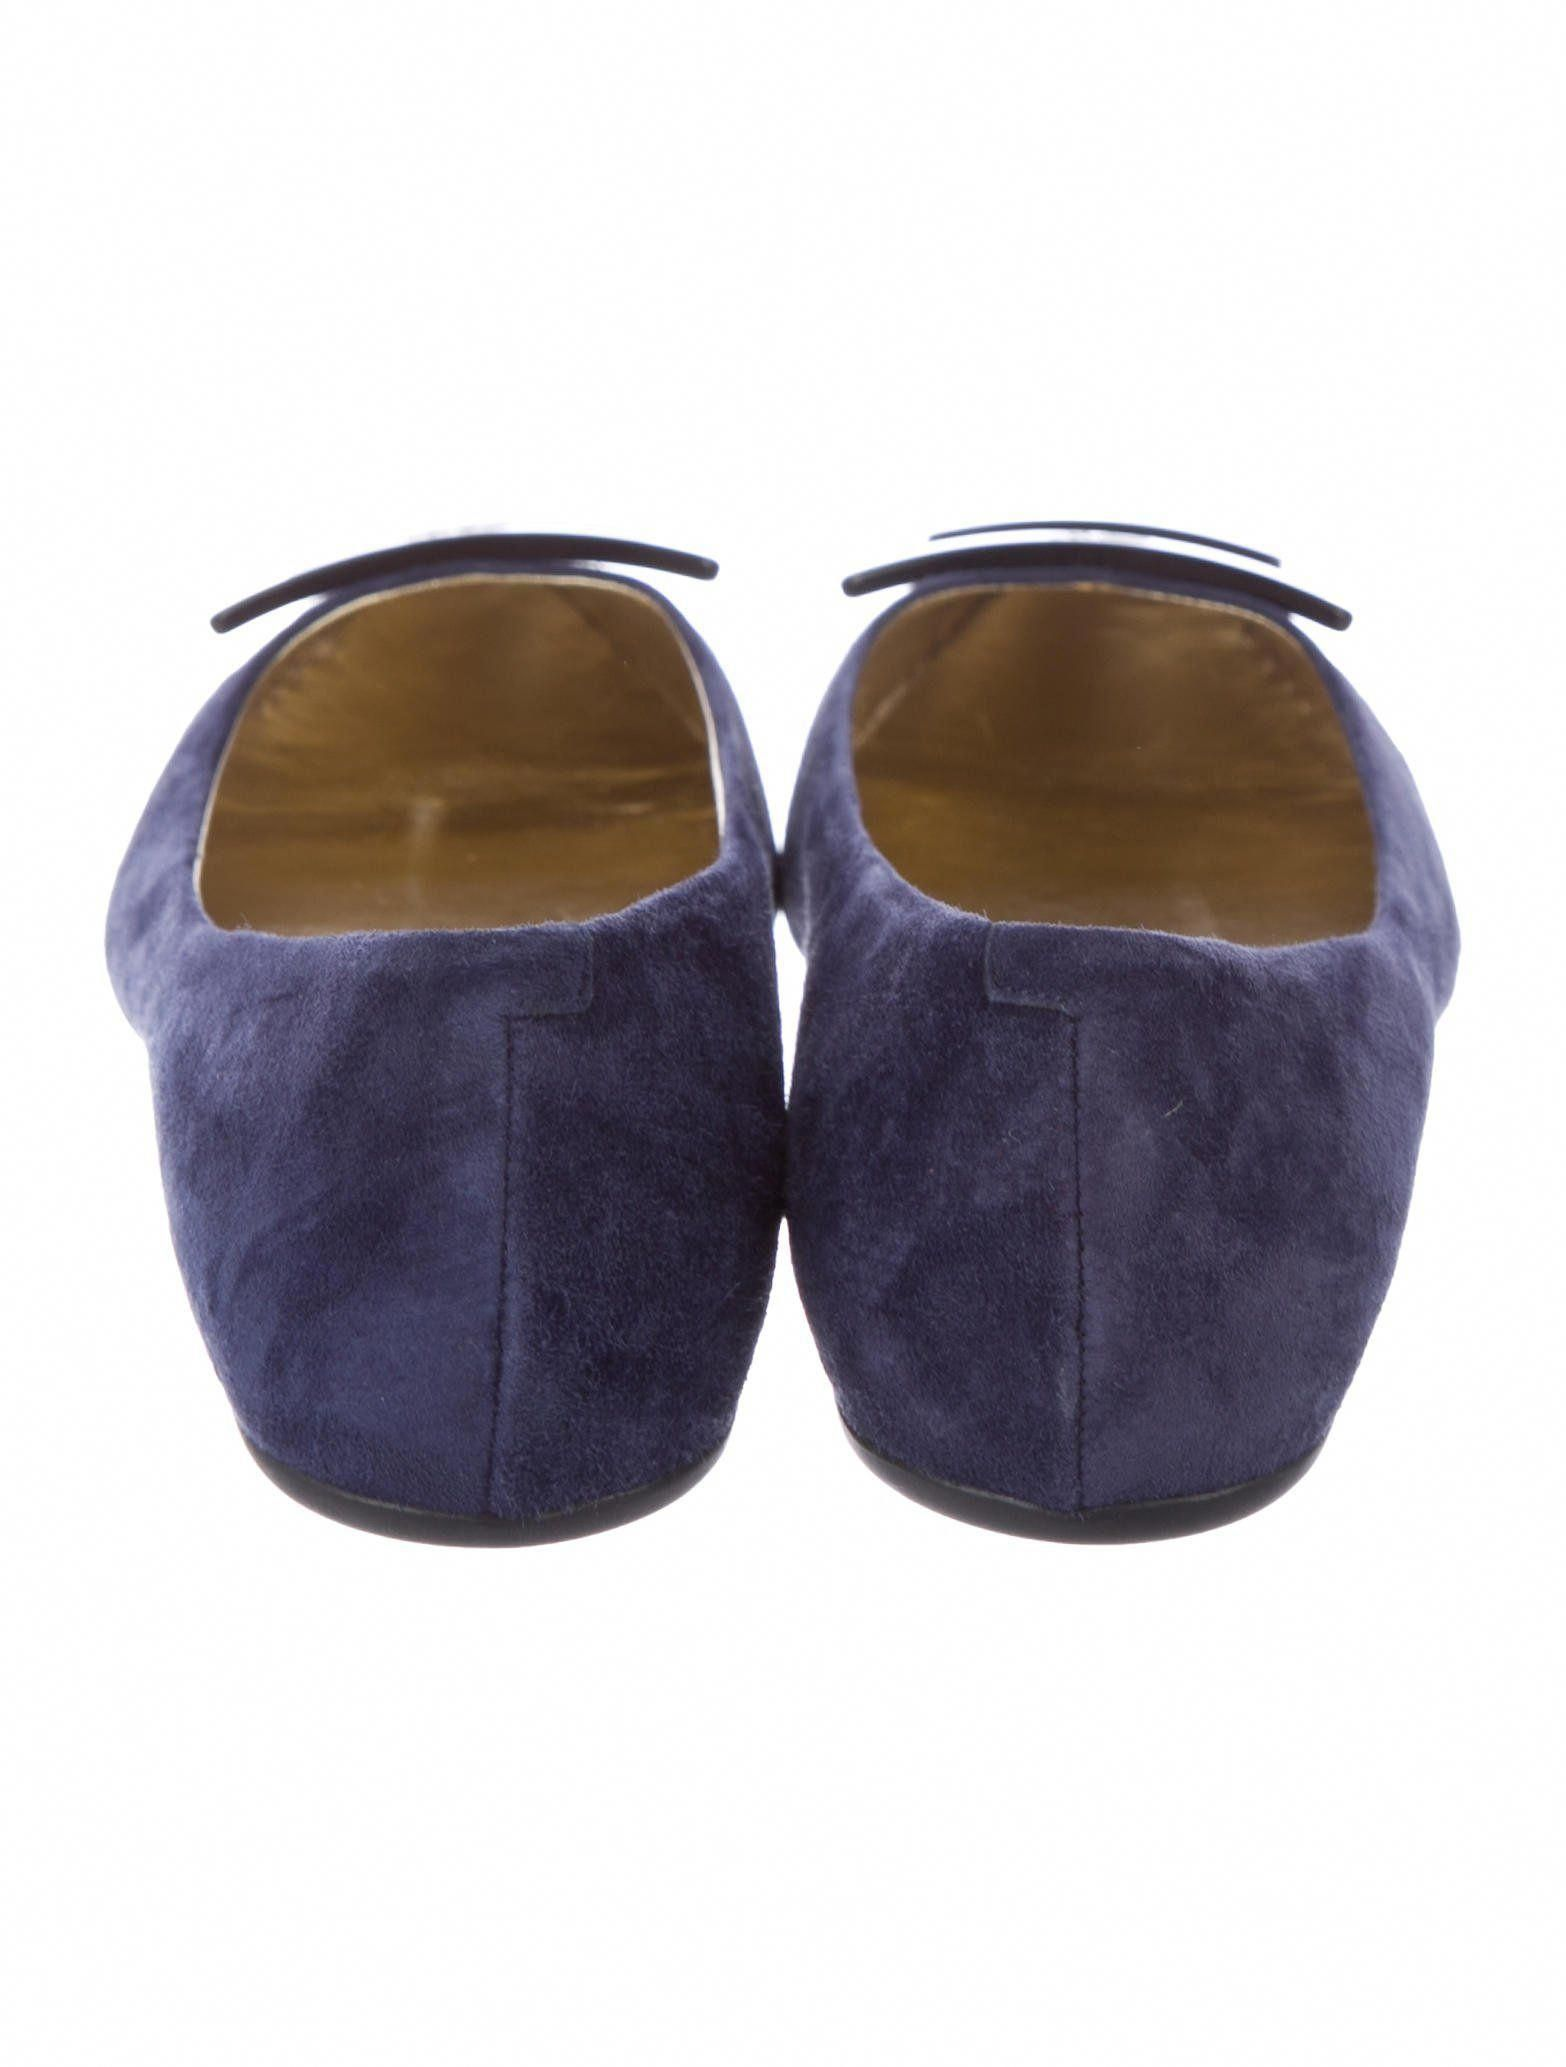 a647157f30e71b Navy suede Roger Vivier round-toe flats with resin buckle accents at tops  and rubber